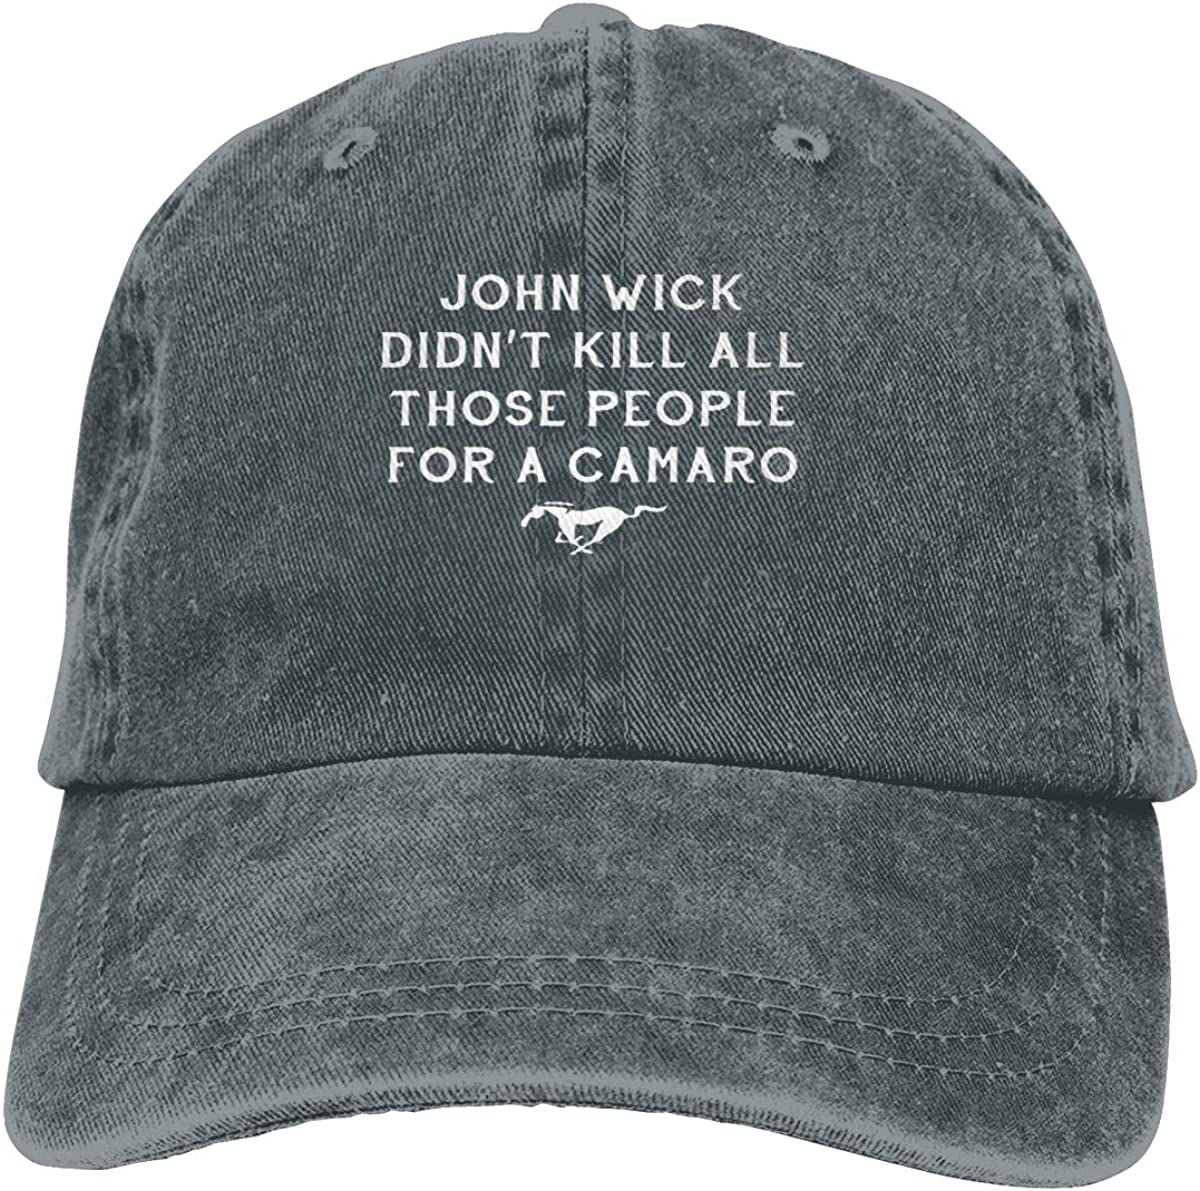 DIY John Wick Didnt Kill for Those People for A Camaro Mustang Horse Car Custom Fashion Baseball Hatblack